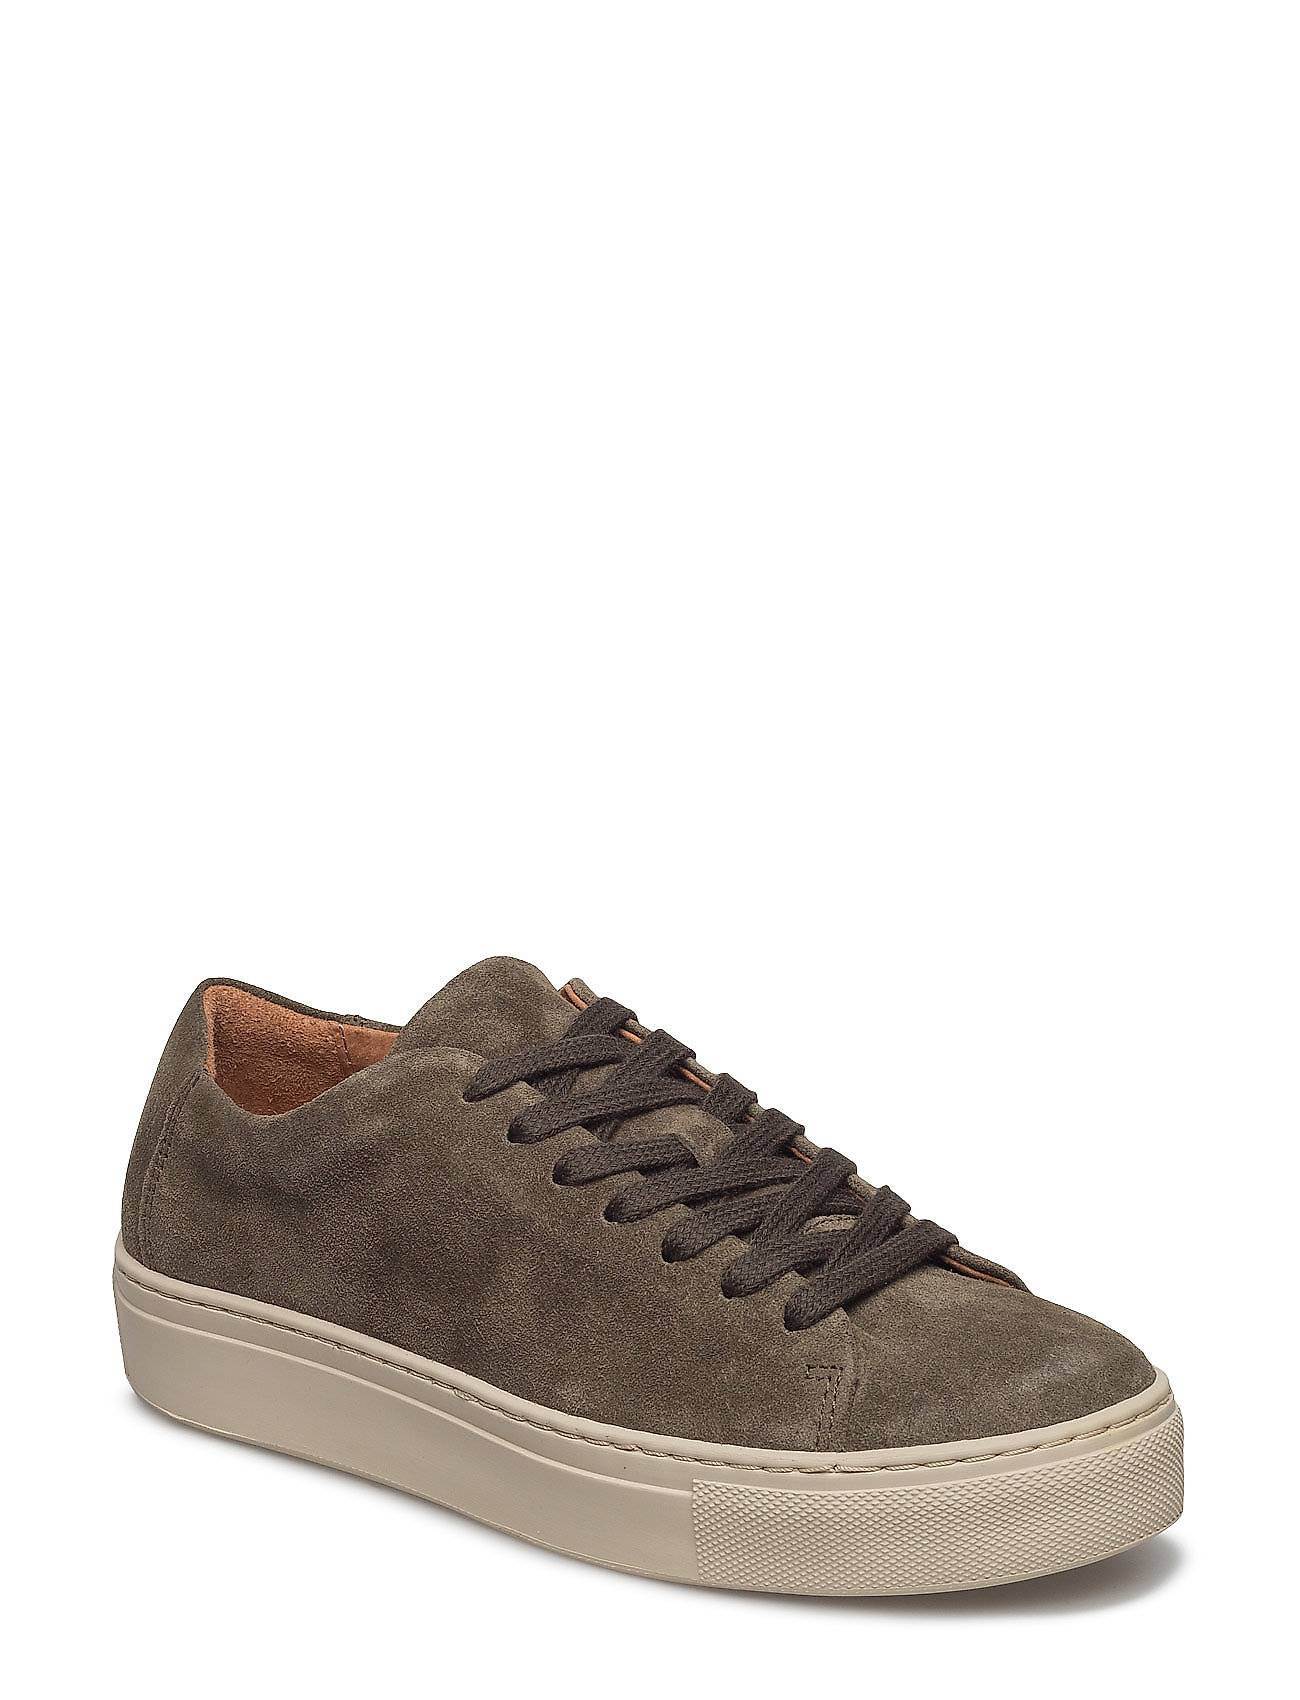 Selected Femme Sfdonna Suede New Sneaker